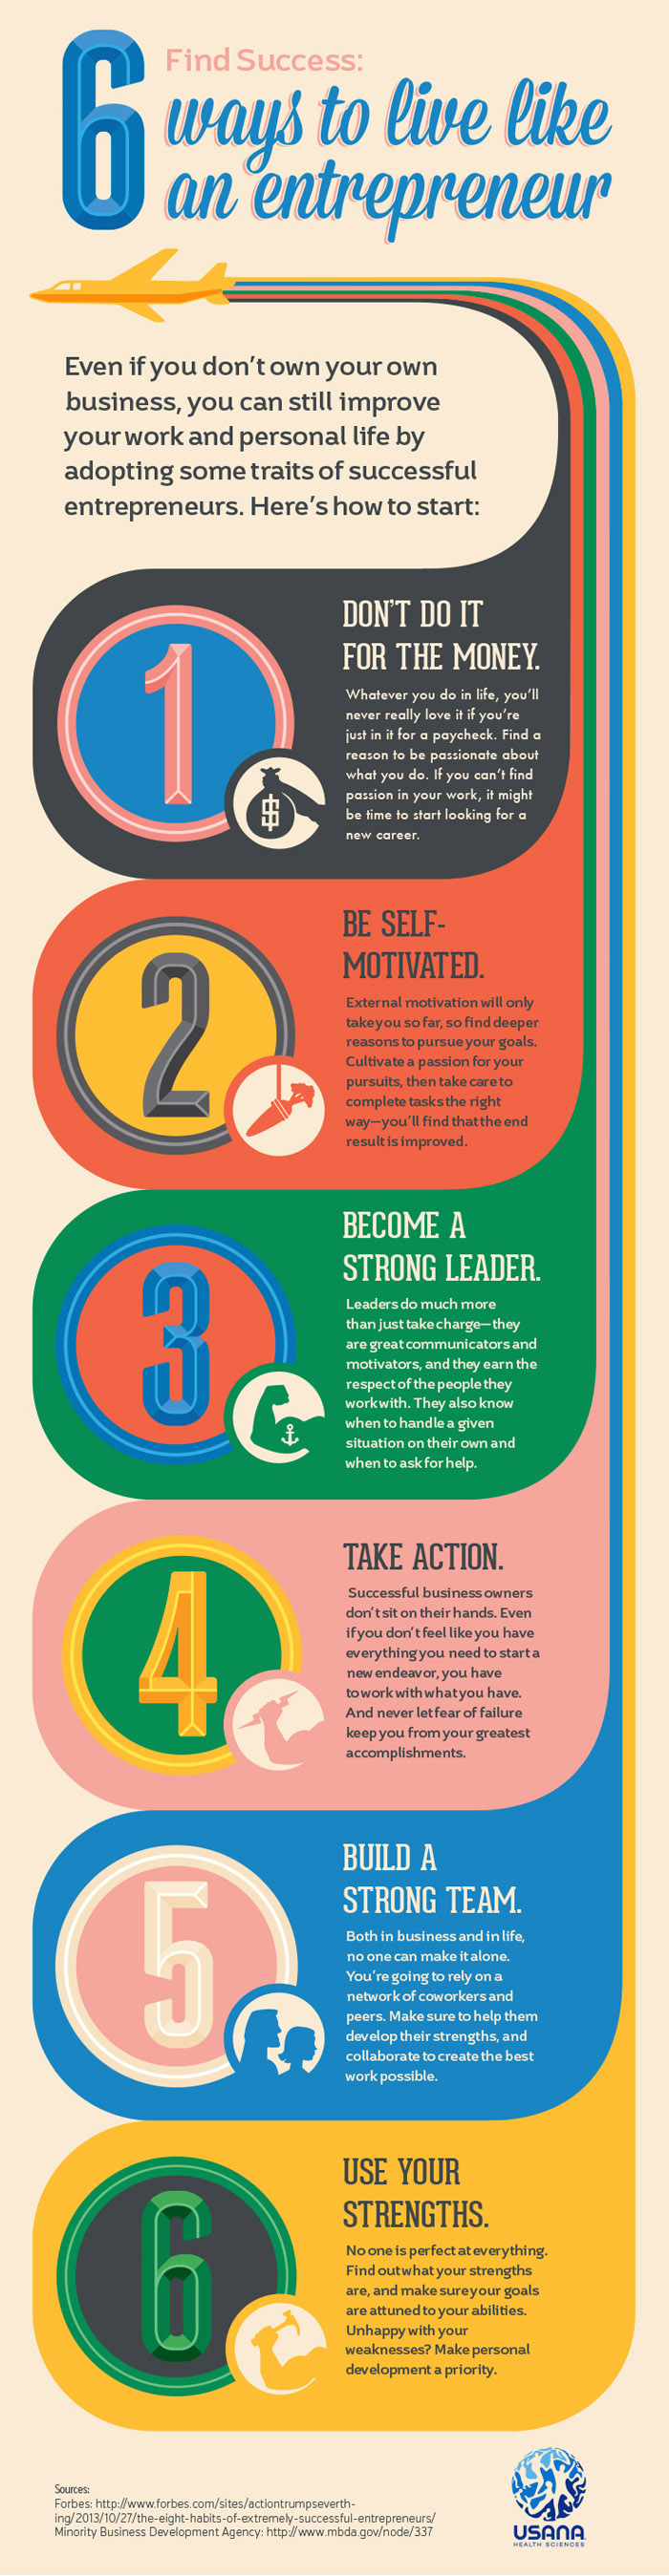 6 Ways to Build Your Entrepreneurial Spirit - Infographic